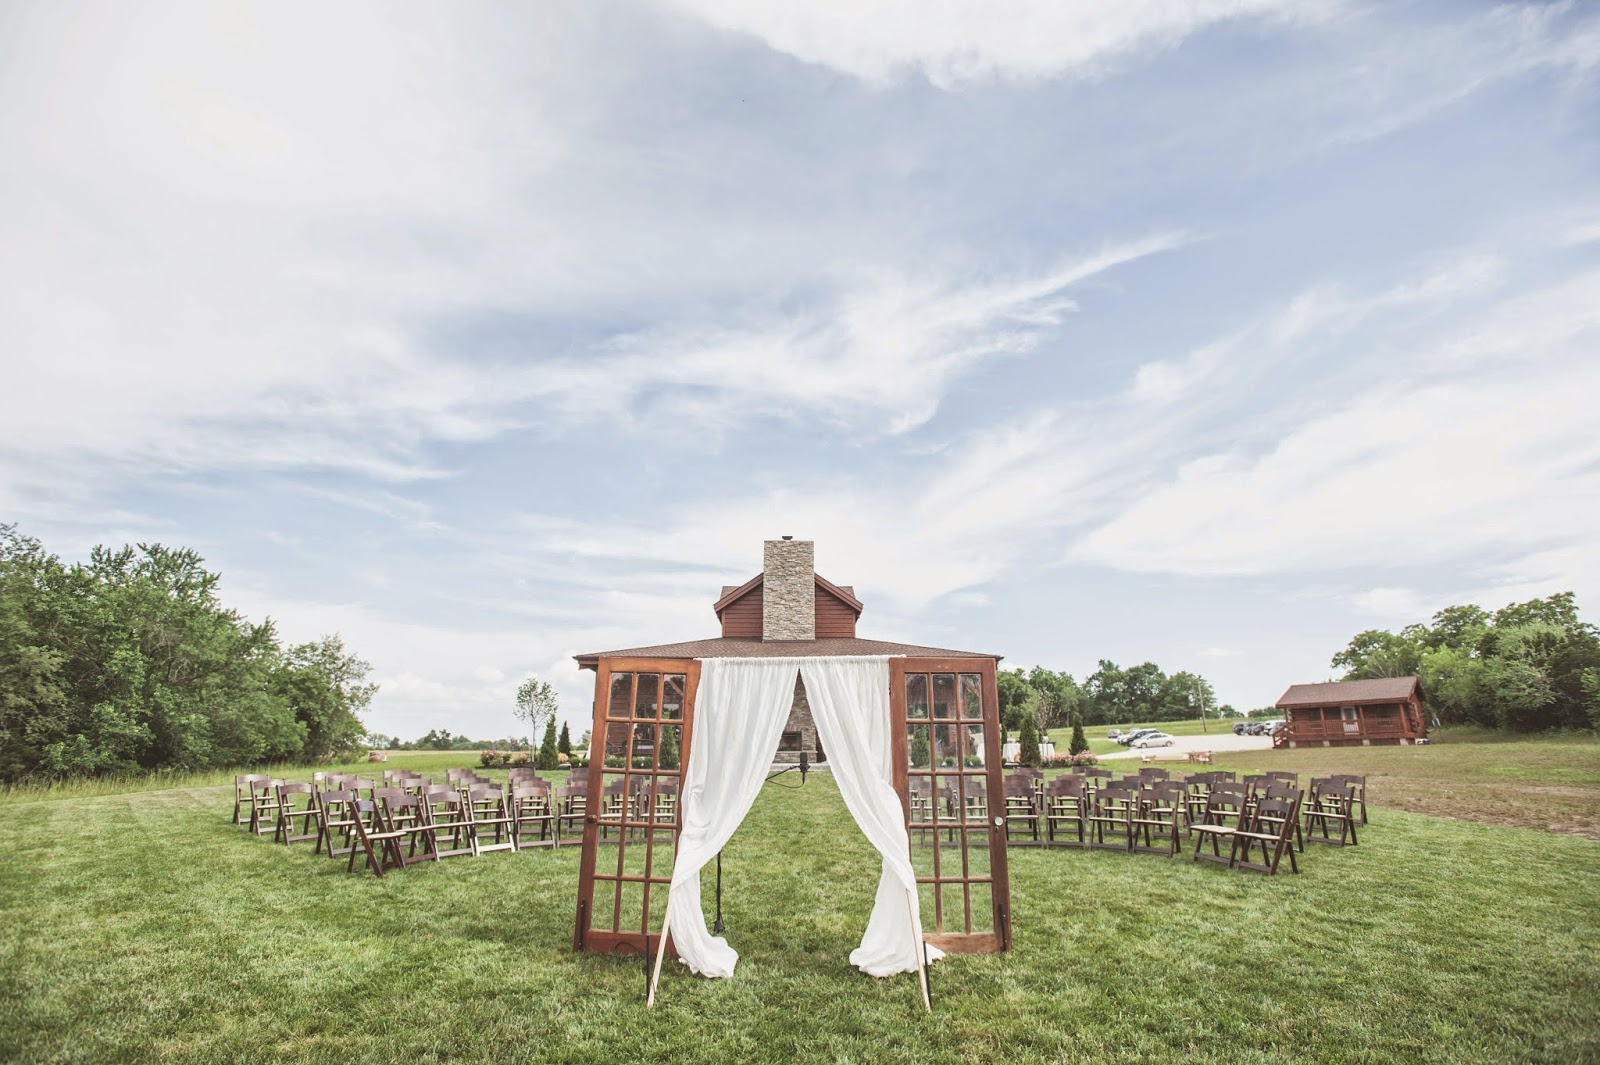 Vintage doors as wedding ceremony backdrop